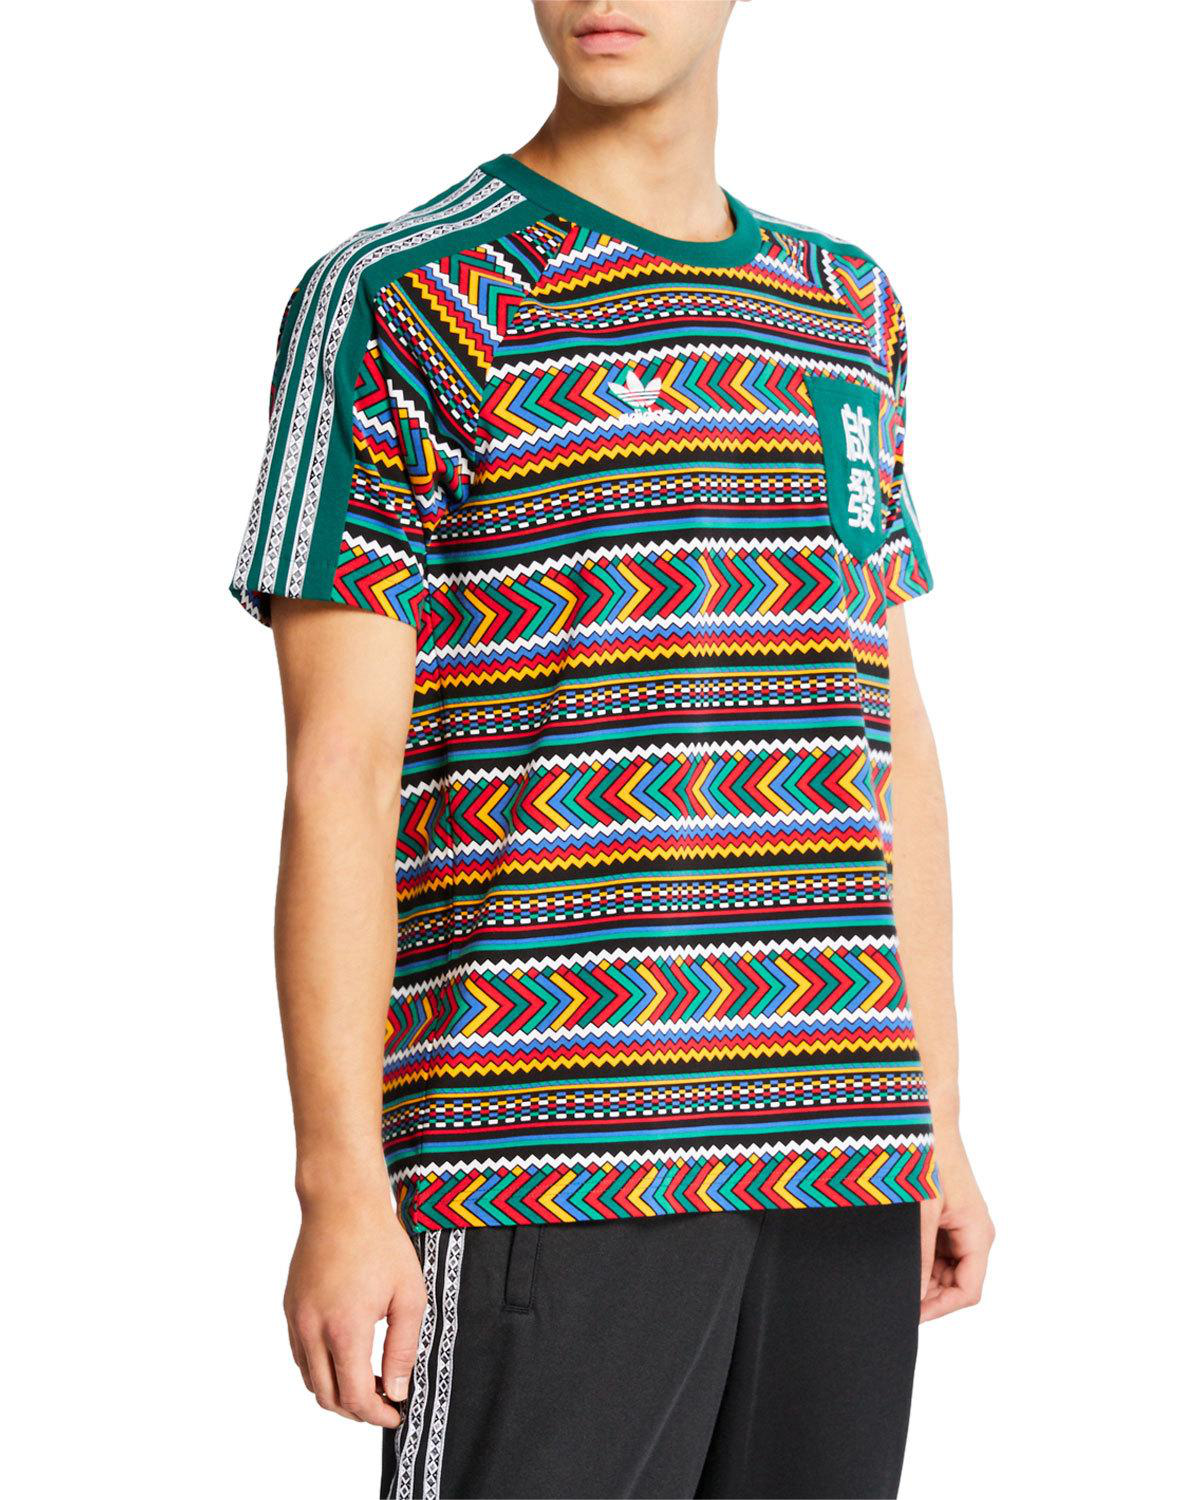 3ea82351f6775 Adidas Originals Men s X Pharrell Williams Solarhu Printed Pocket T-Shirt  In Multicolor